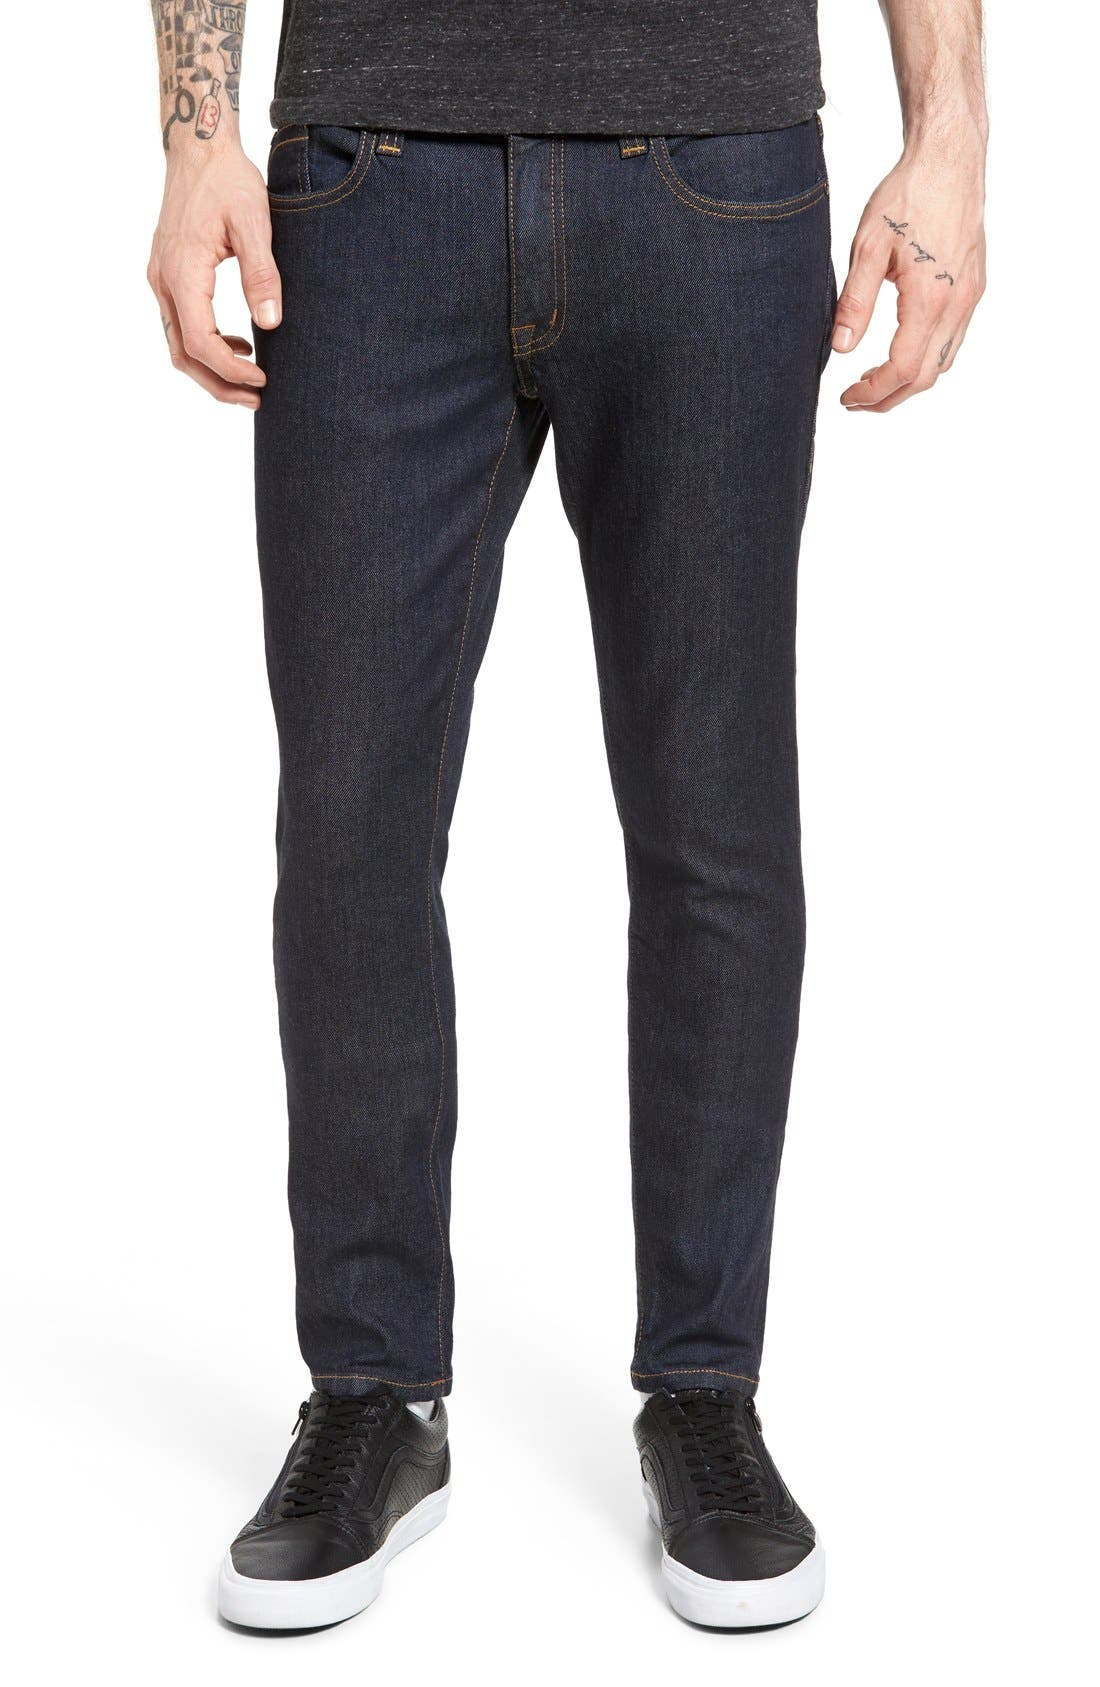 Alternate Image 1 Selected - Fidelity Denim Vantage Skinny Fit Jeans (Halo Rinse)